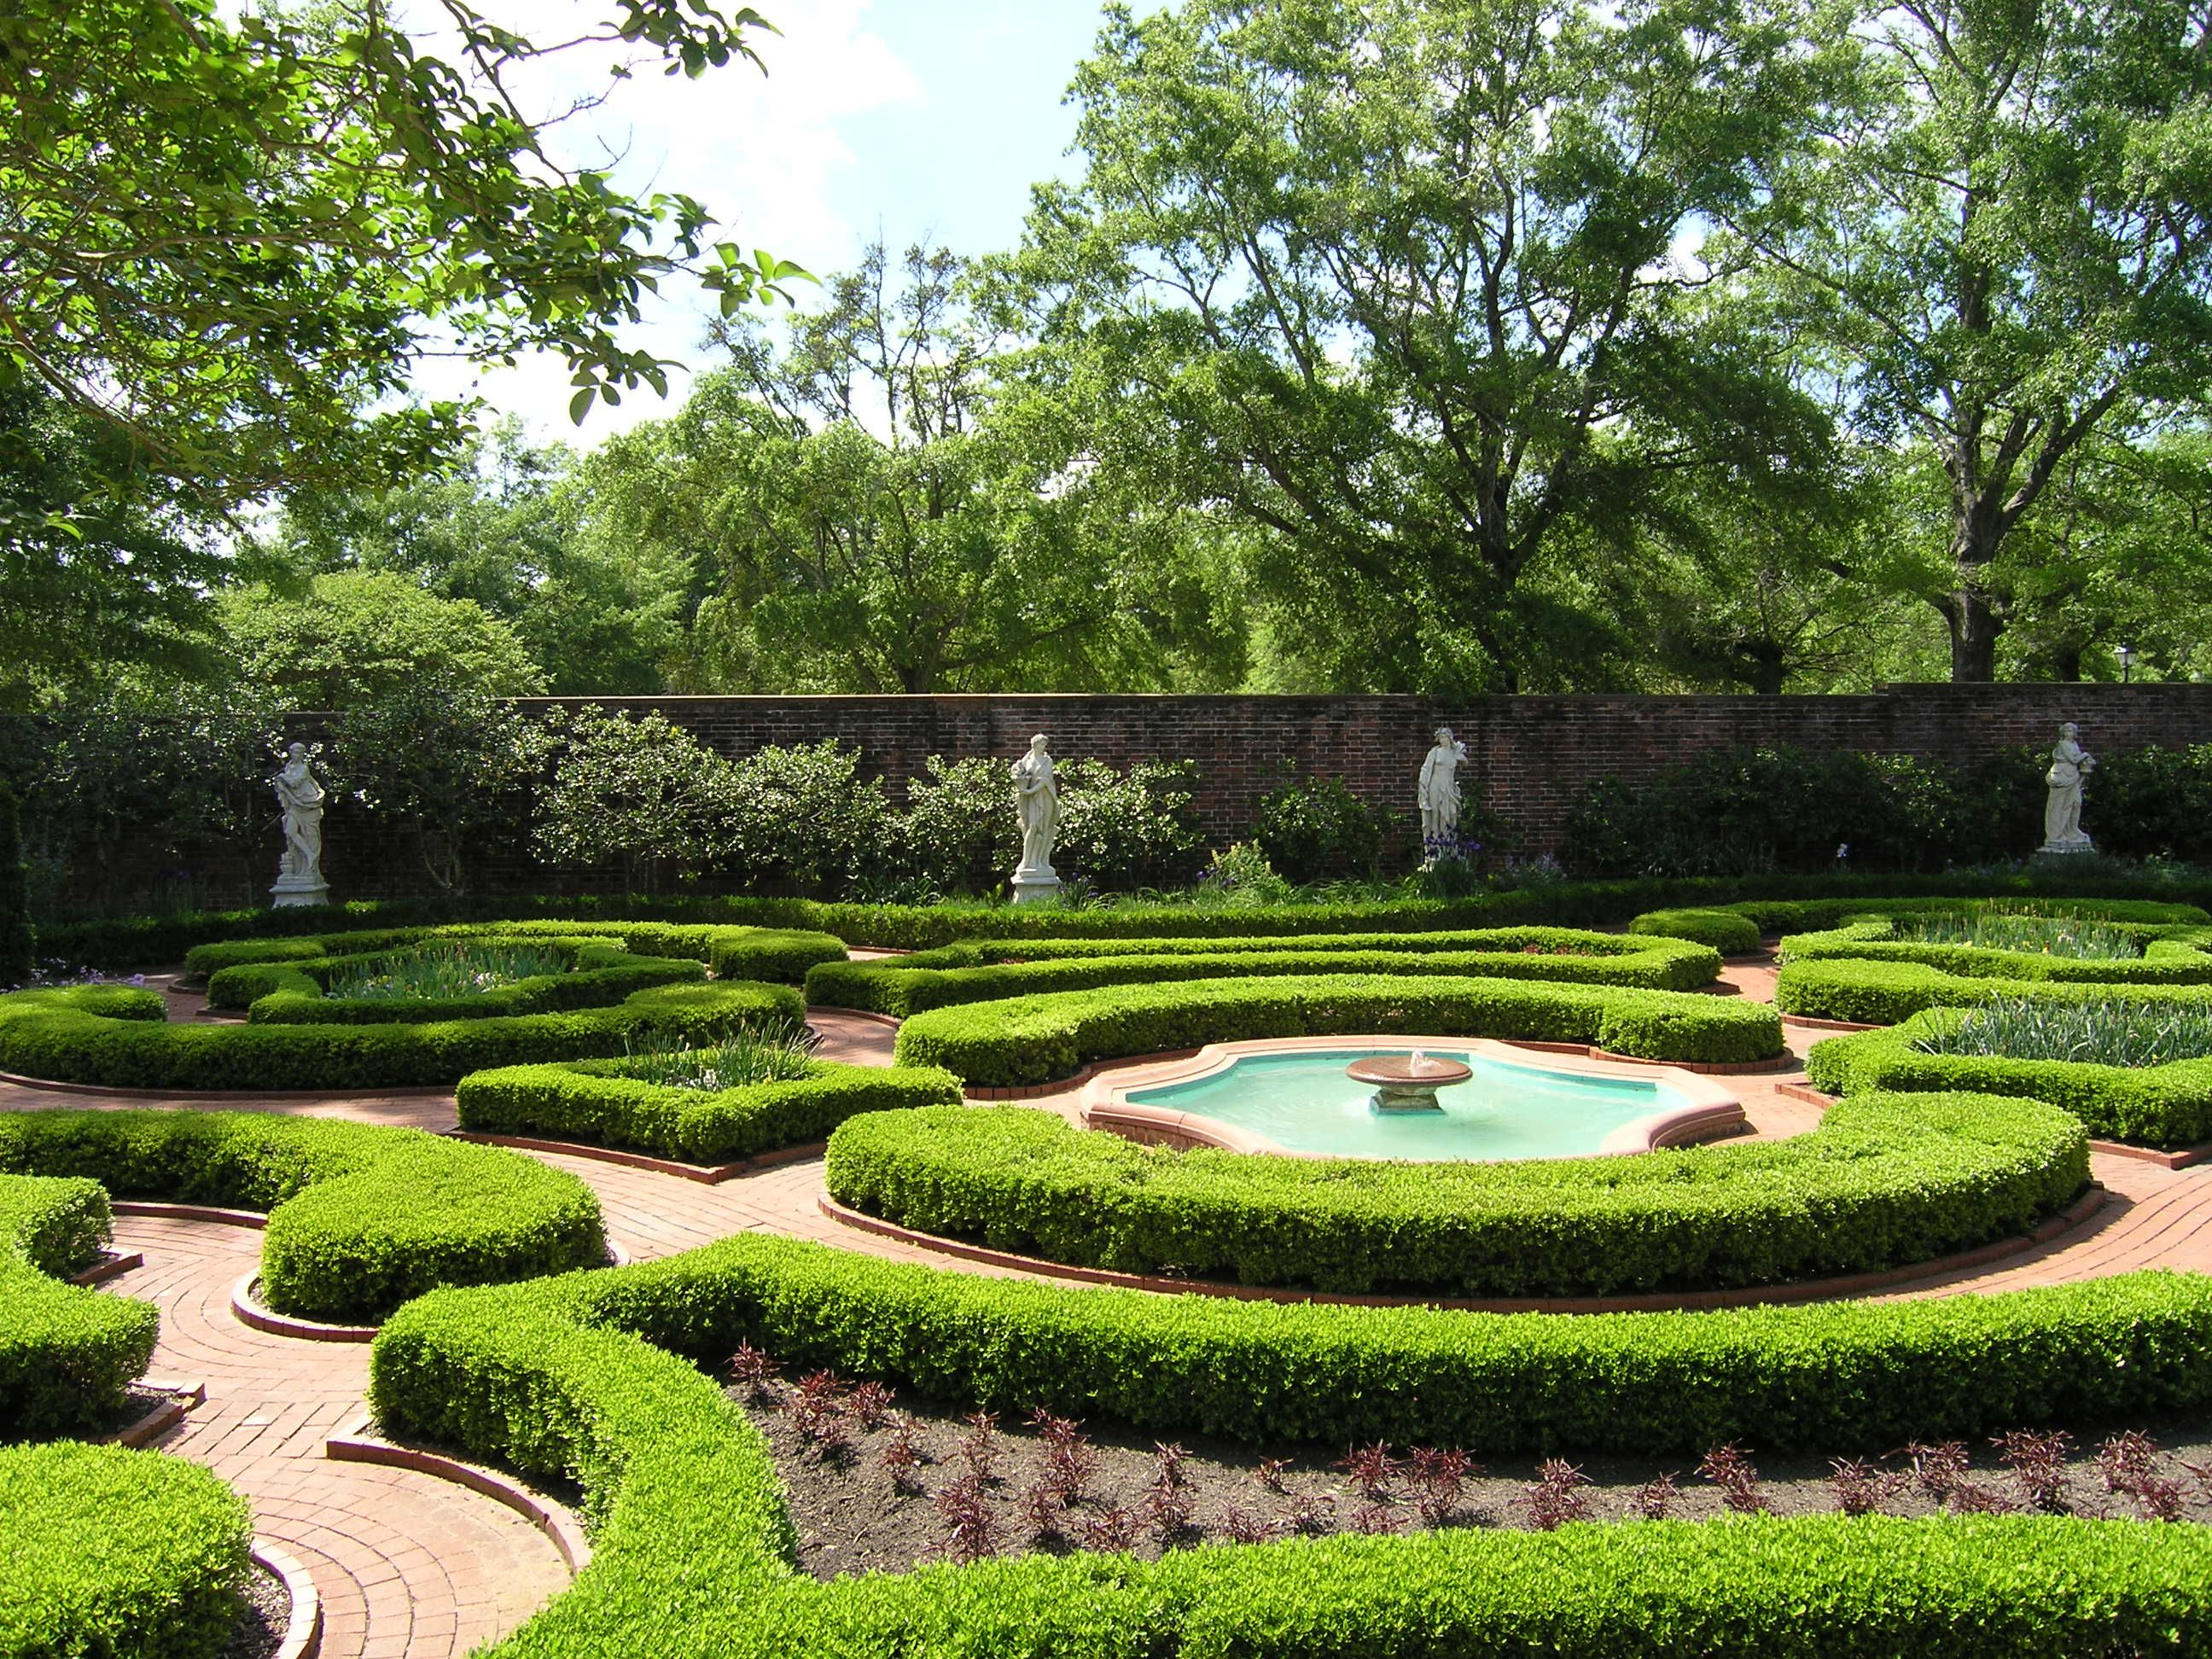 Parterre Garden Tryon Palace New Bern Nc Landscaping